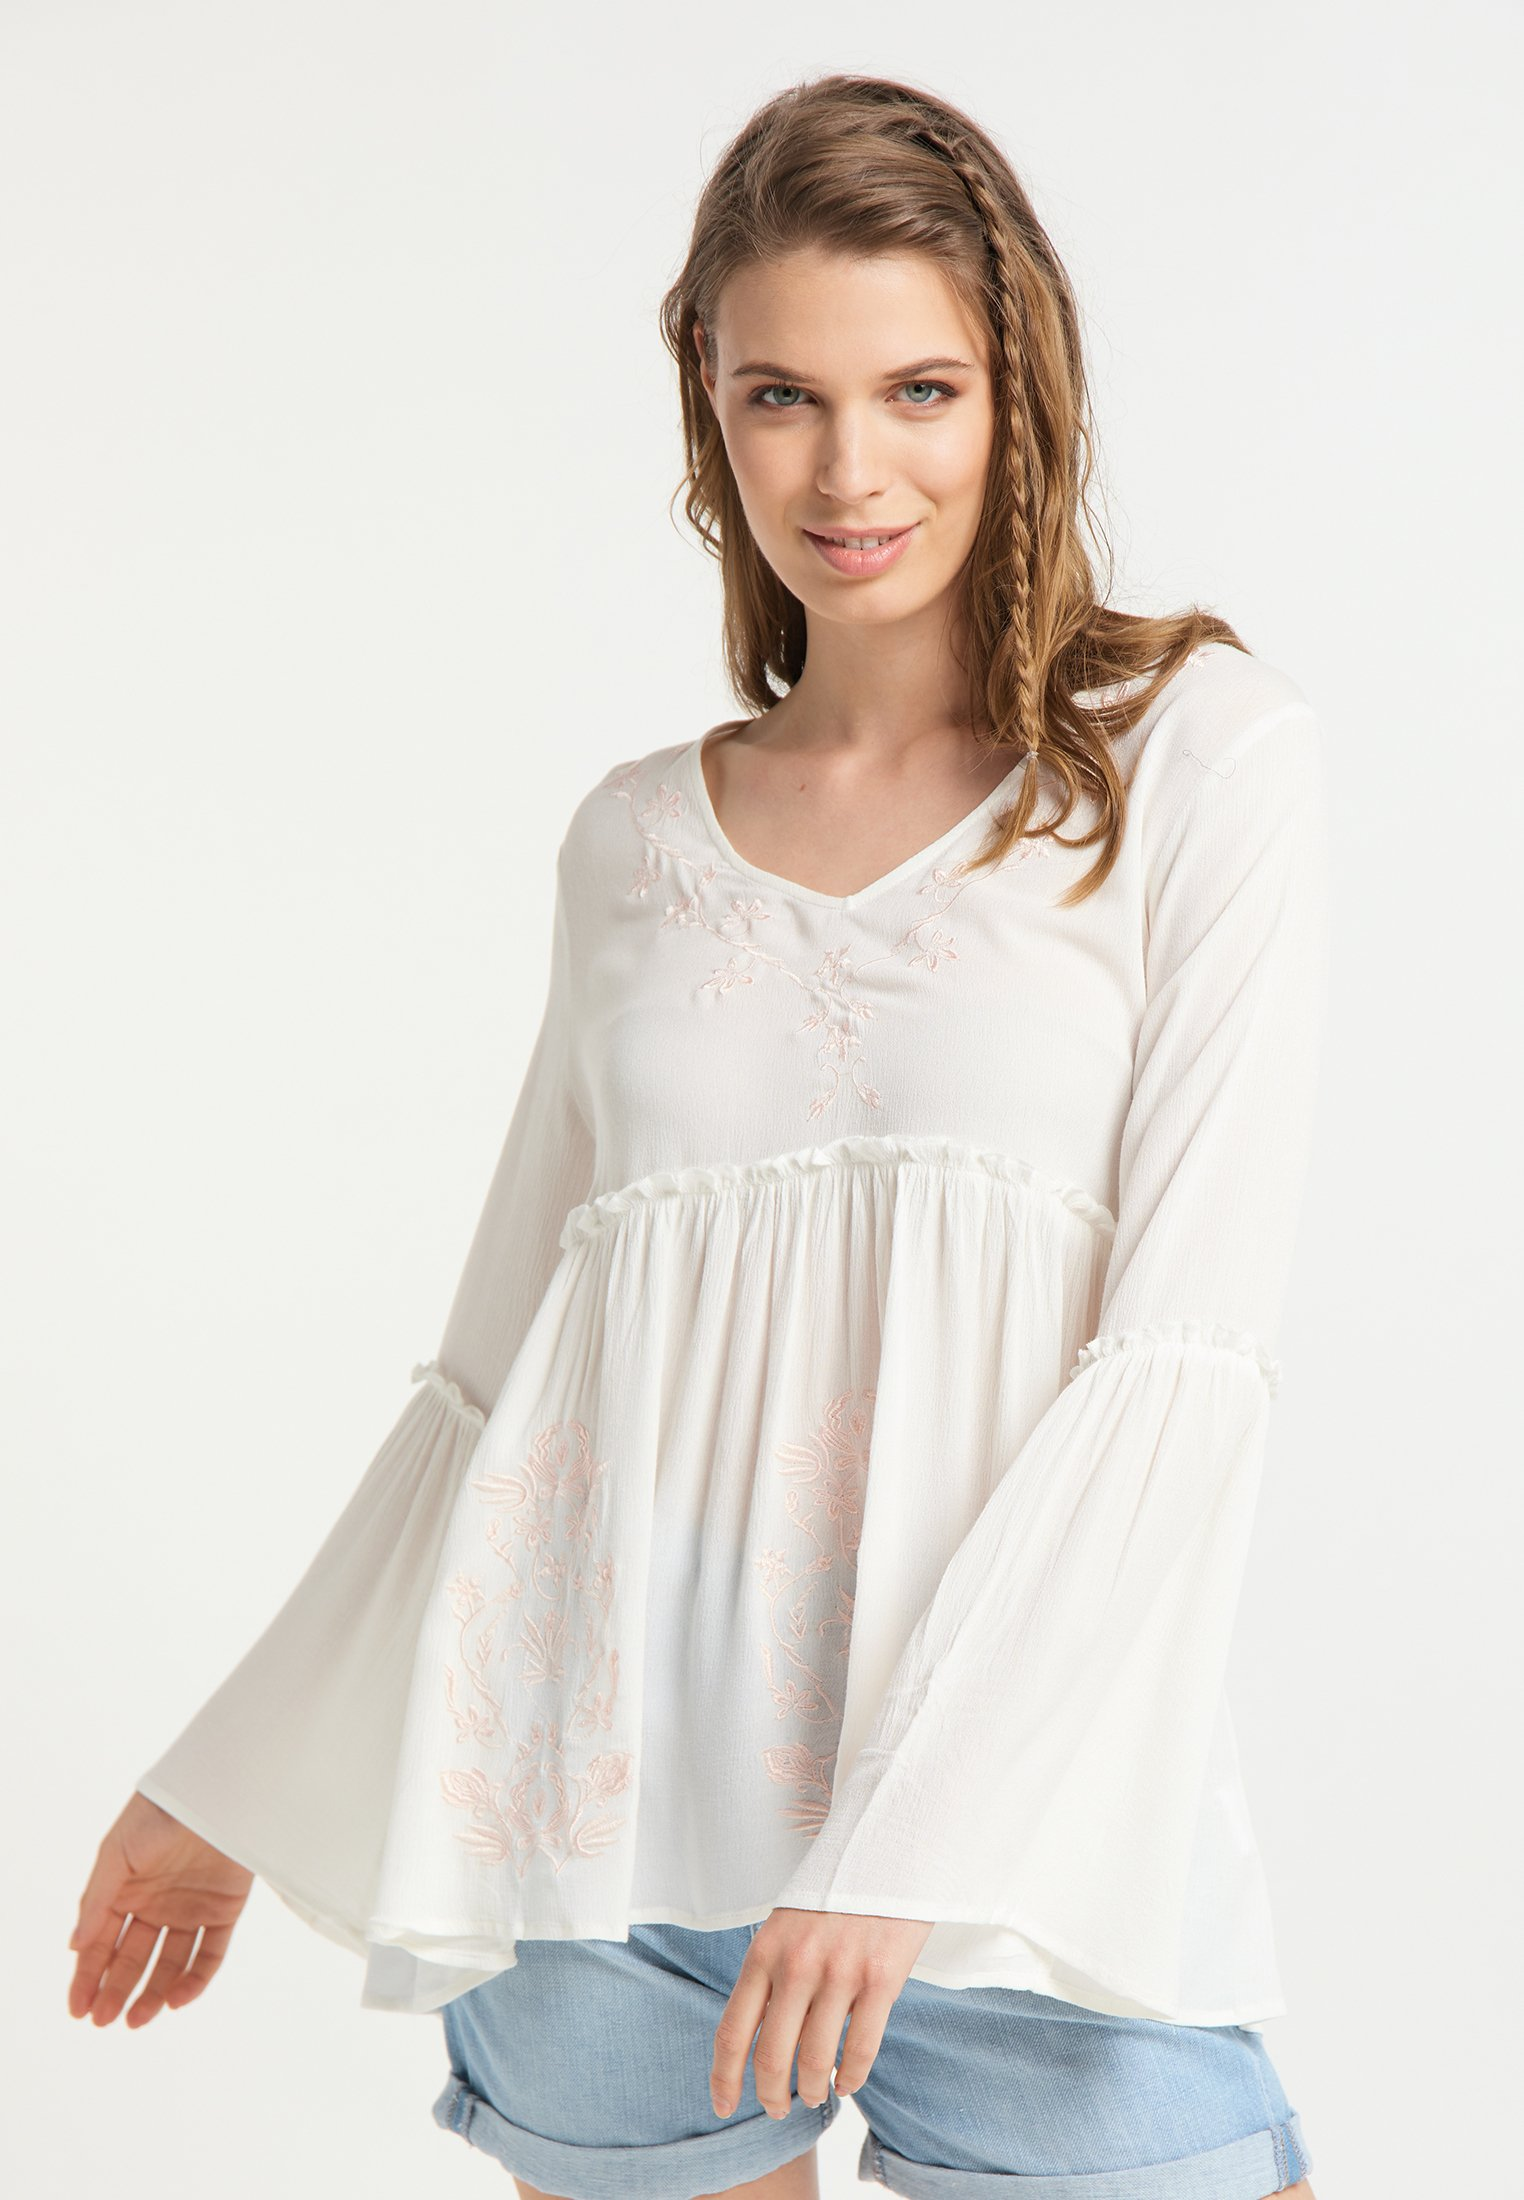 usha Blouse - wollweiss - Tops & T-shirts Femme fRLe8